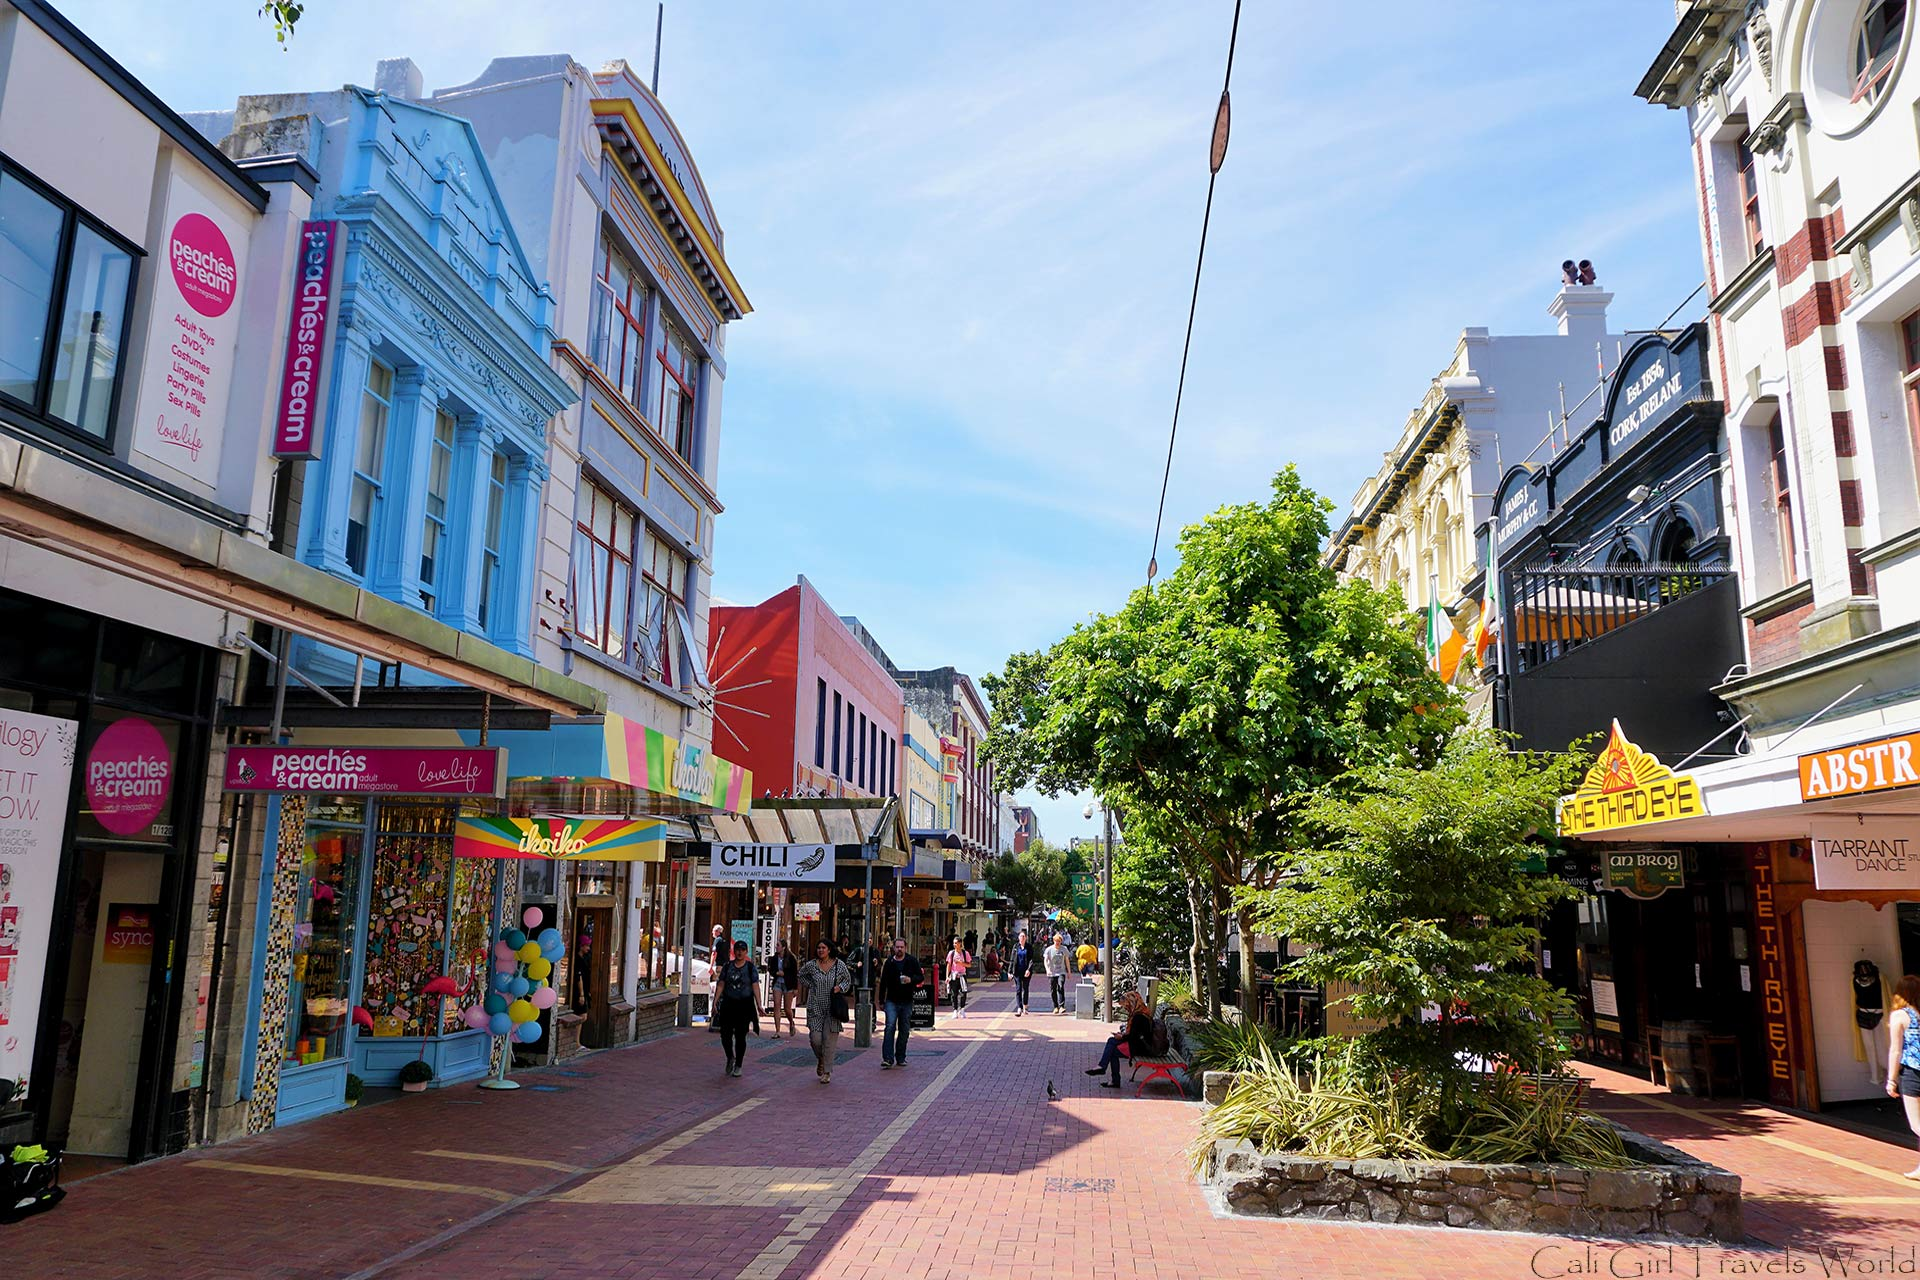 A photo of cuba street in wellington on the north island of new zealand.